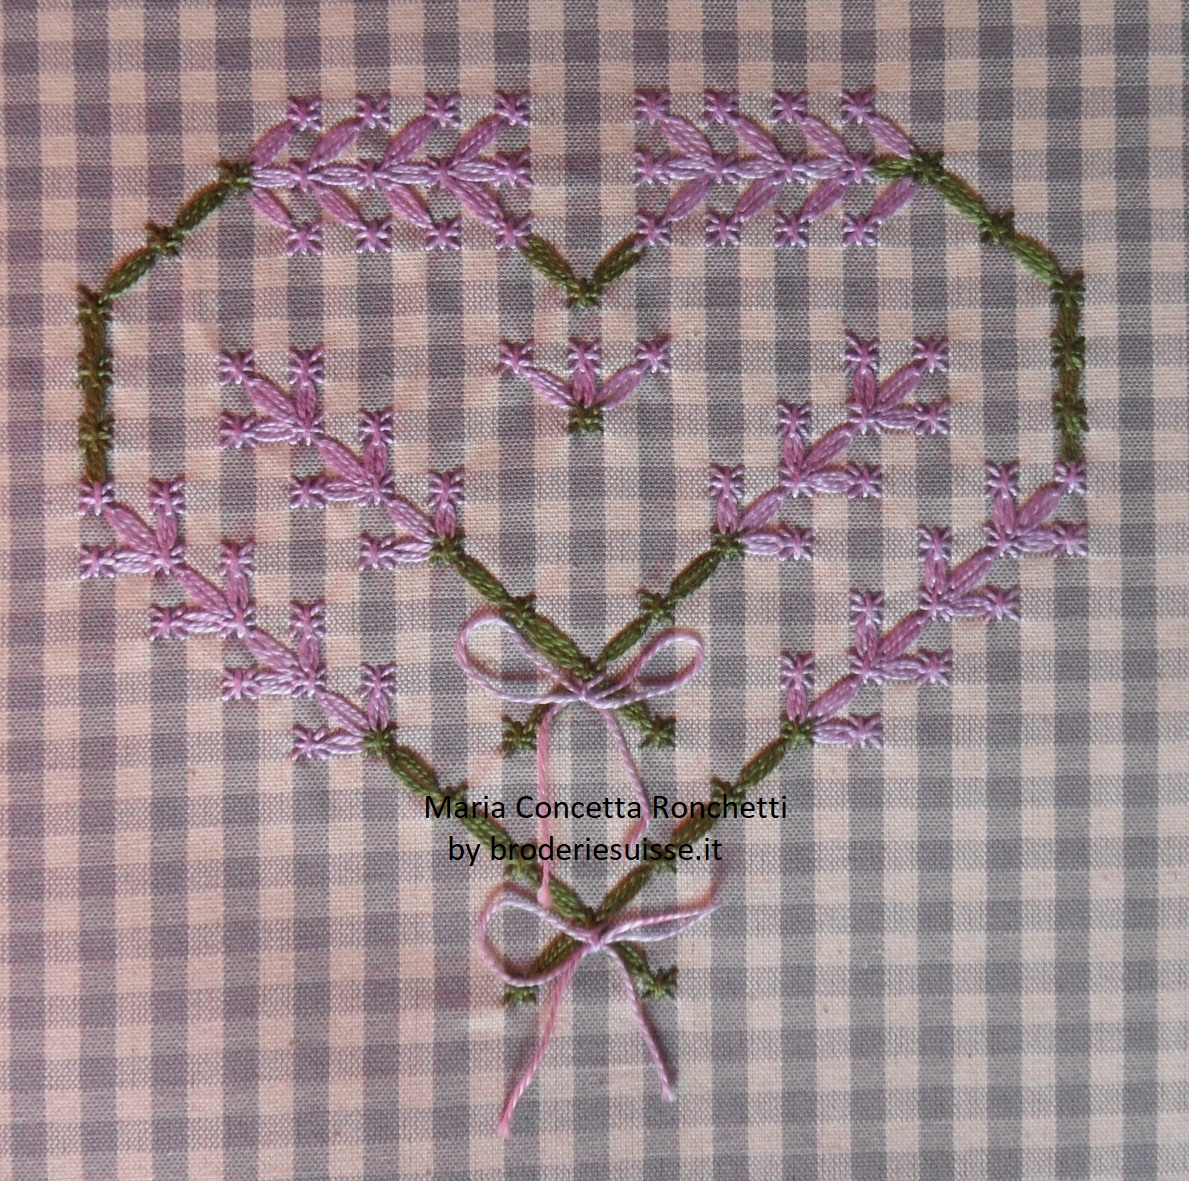 09-Settembre-cuore-broderie-suisse